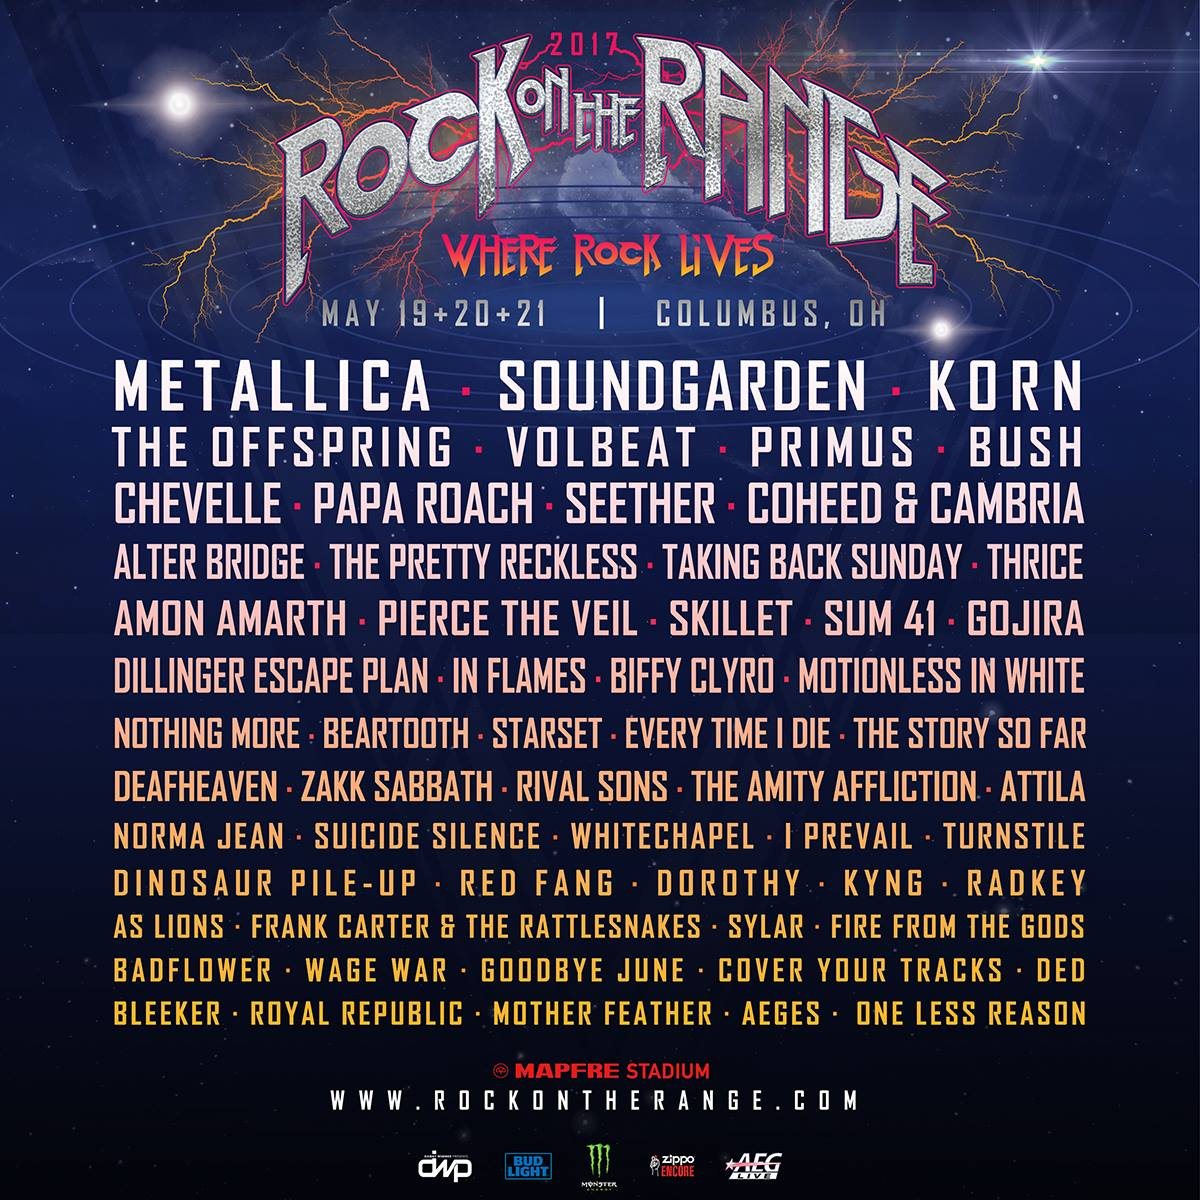 rock on the range 20173 Metallica, Soundgarden to headline Rock on the Range 2017